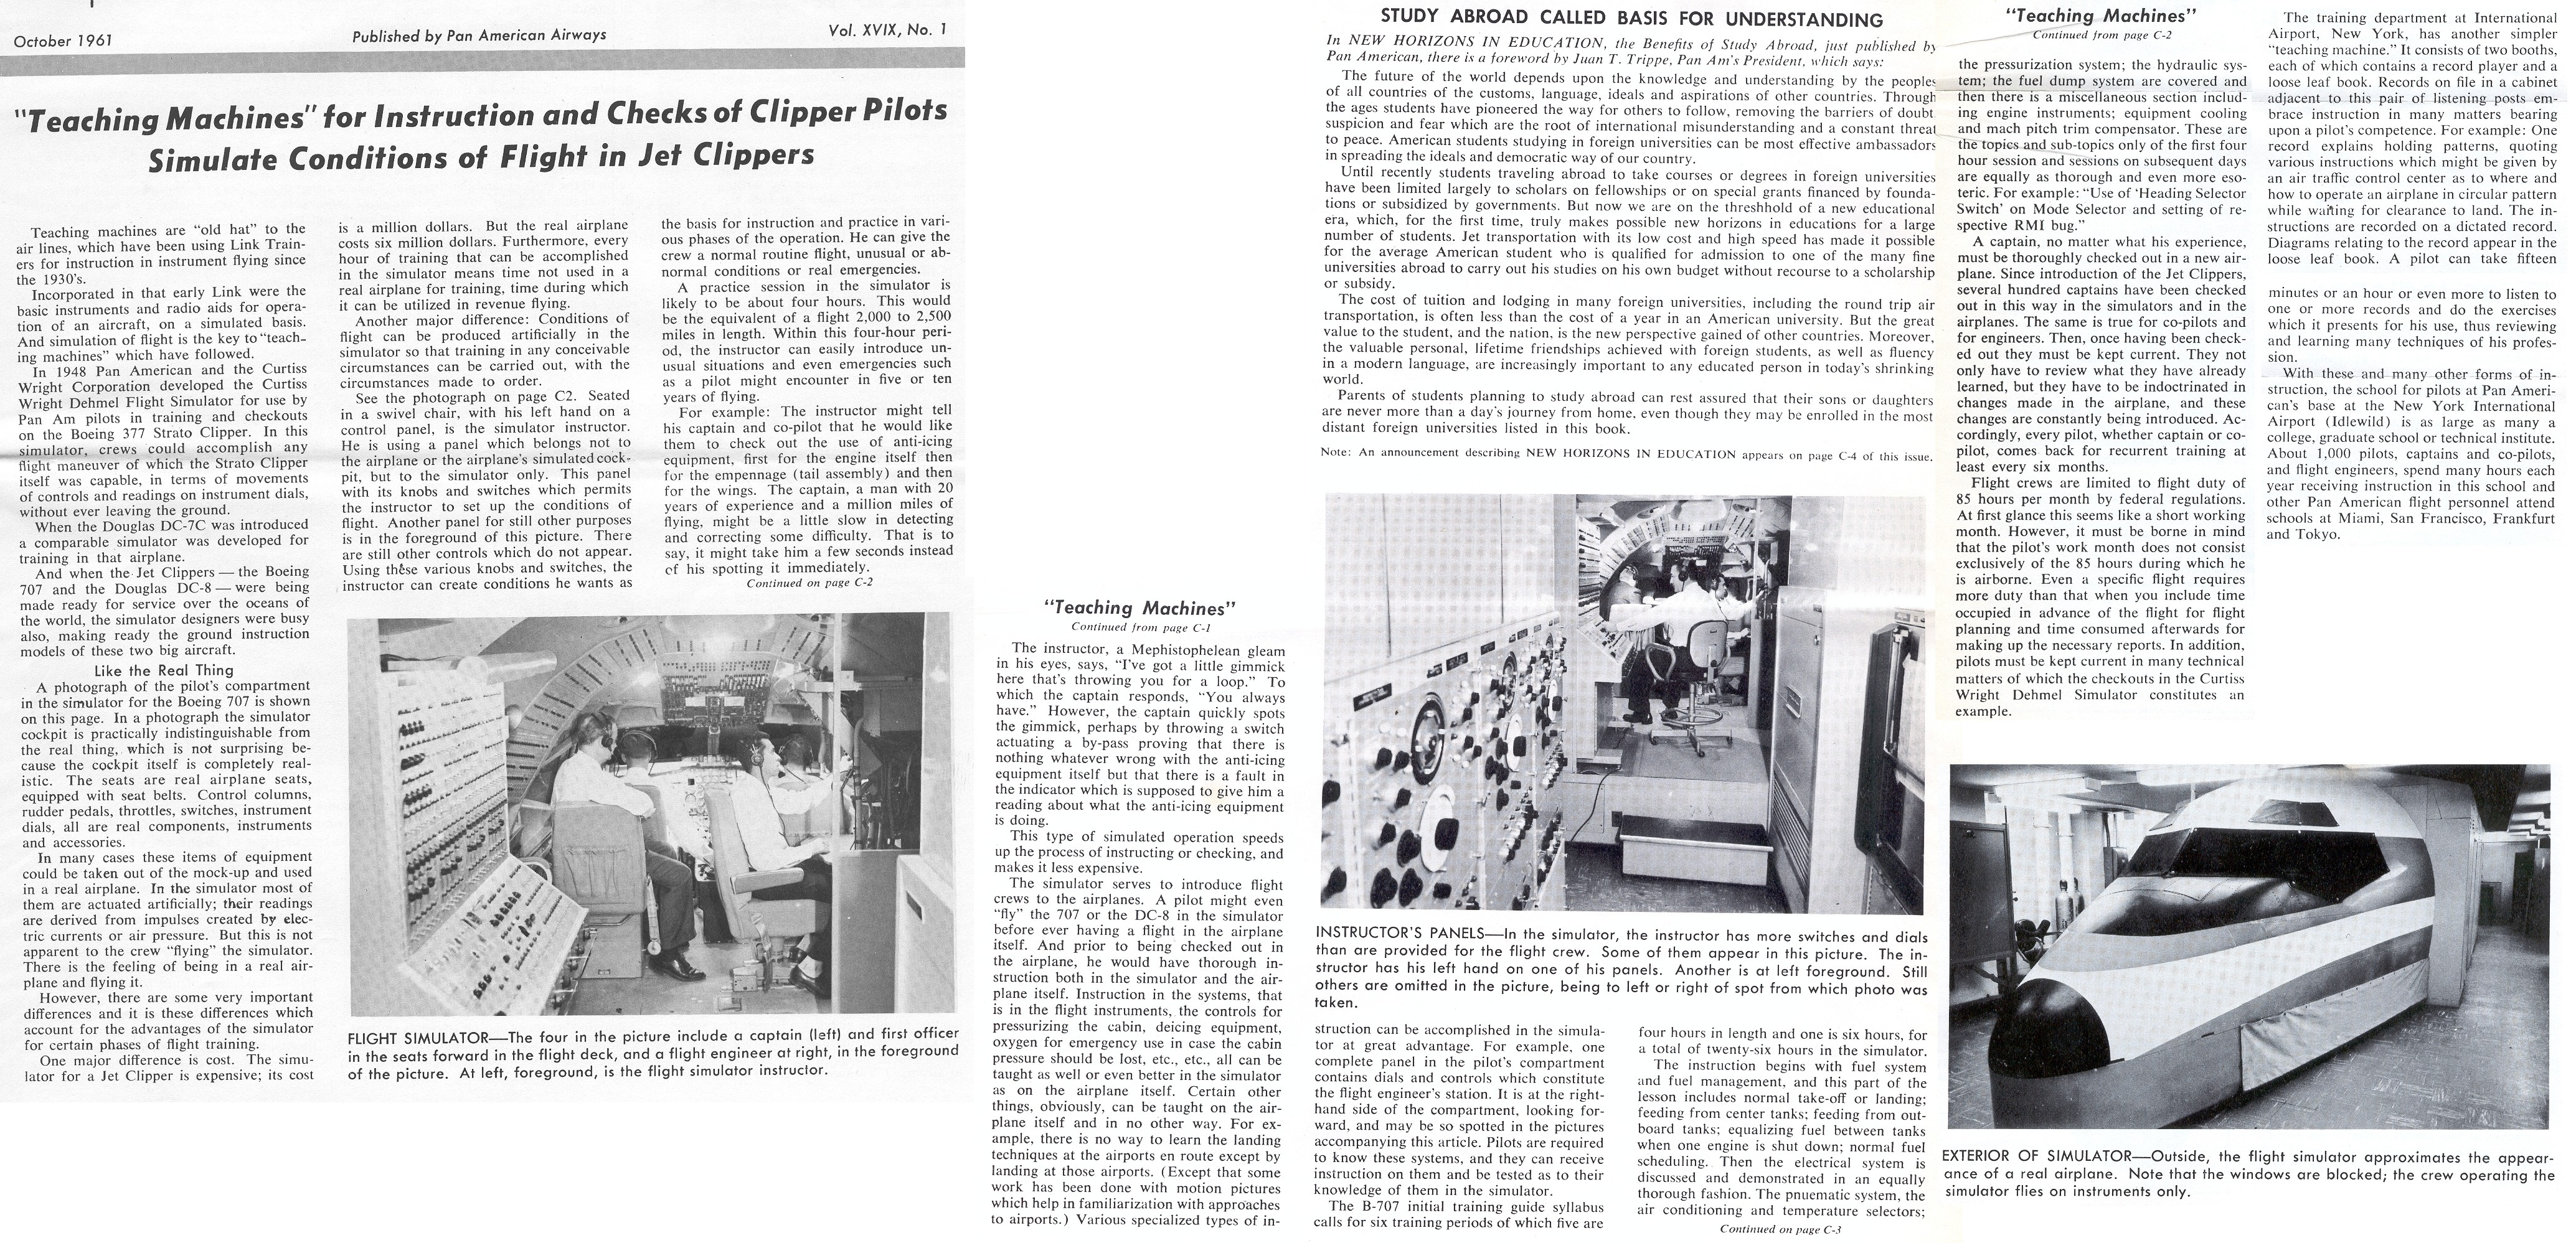 1961, October,  Information on first generation jet training simulators.